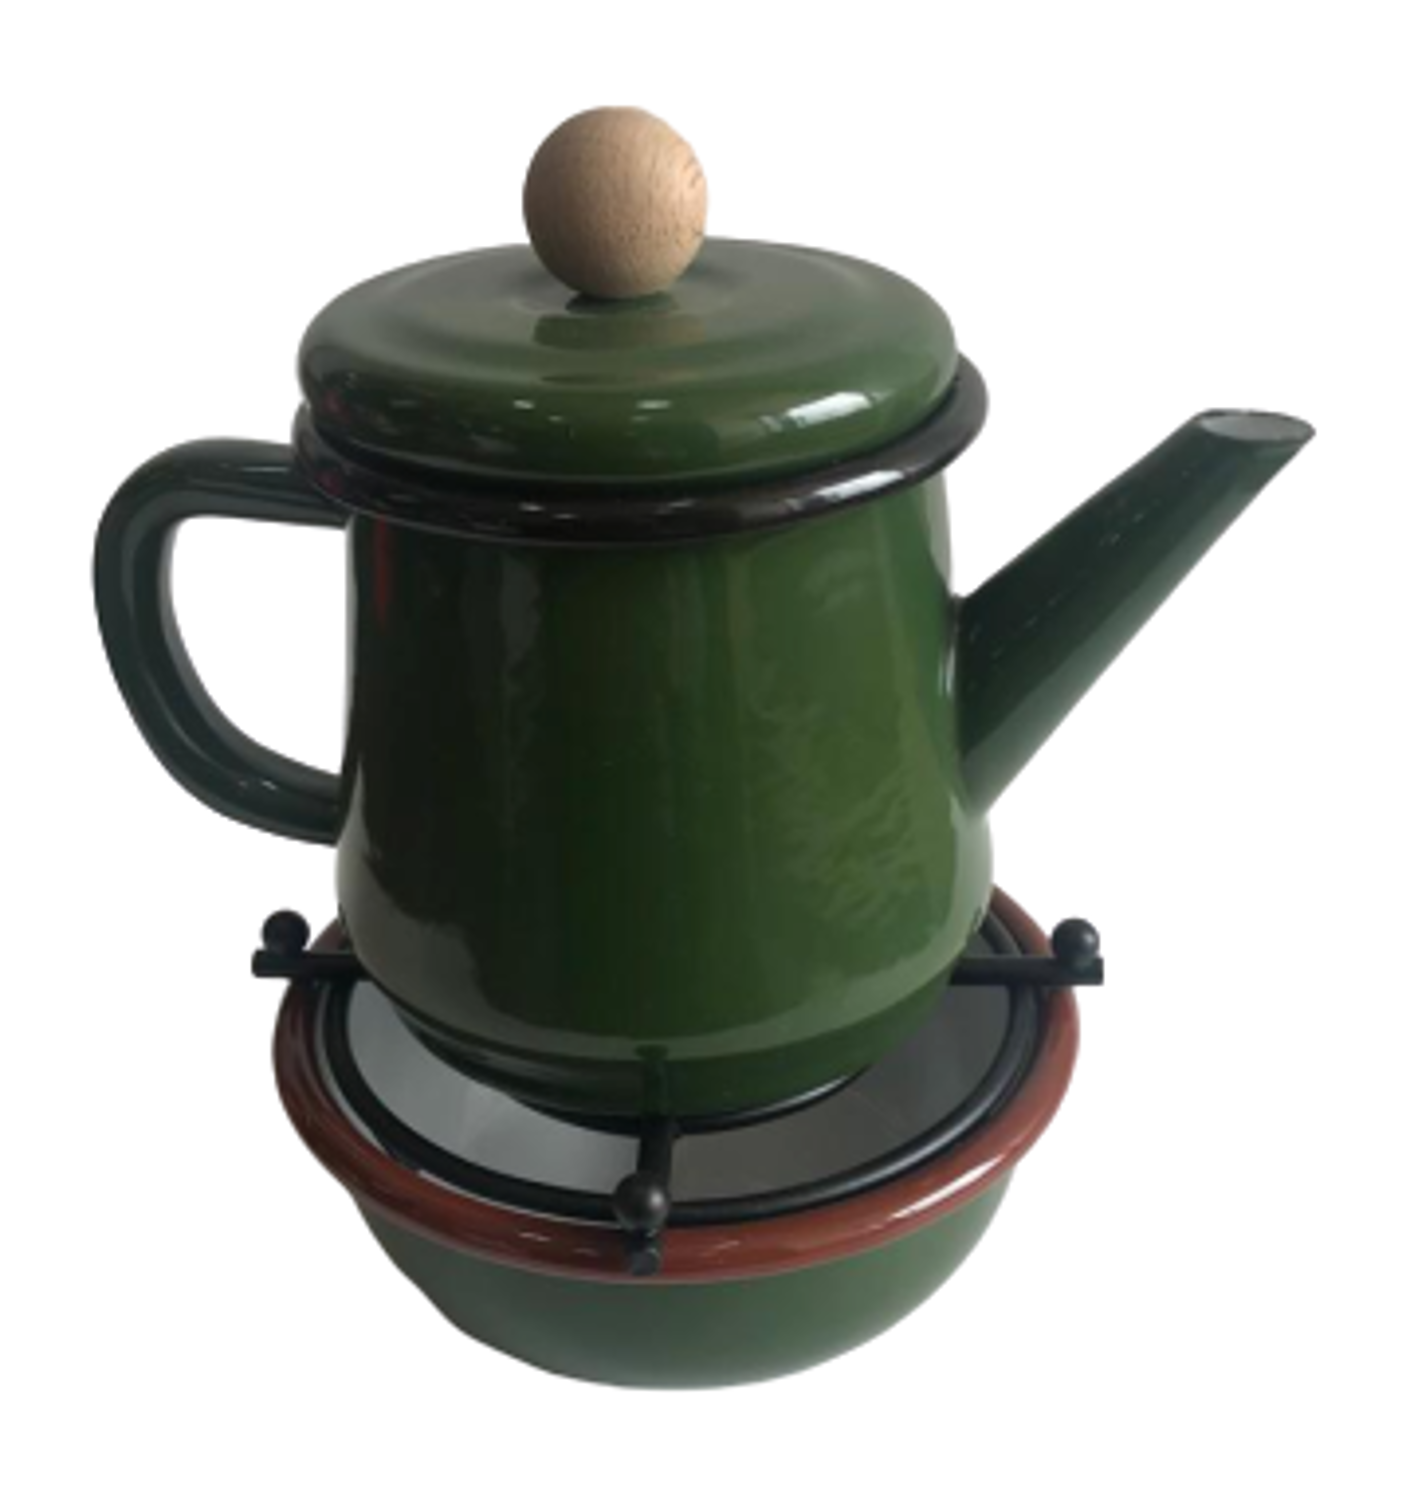 Picture of MEVLANA ENAMEL TEA POT WITH OTTOMAN STOVE - GREEN